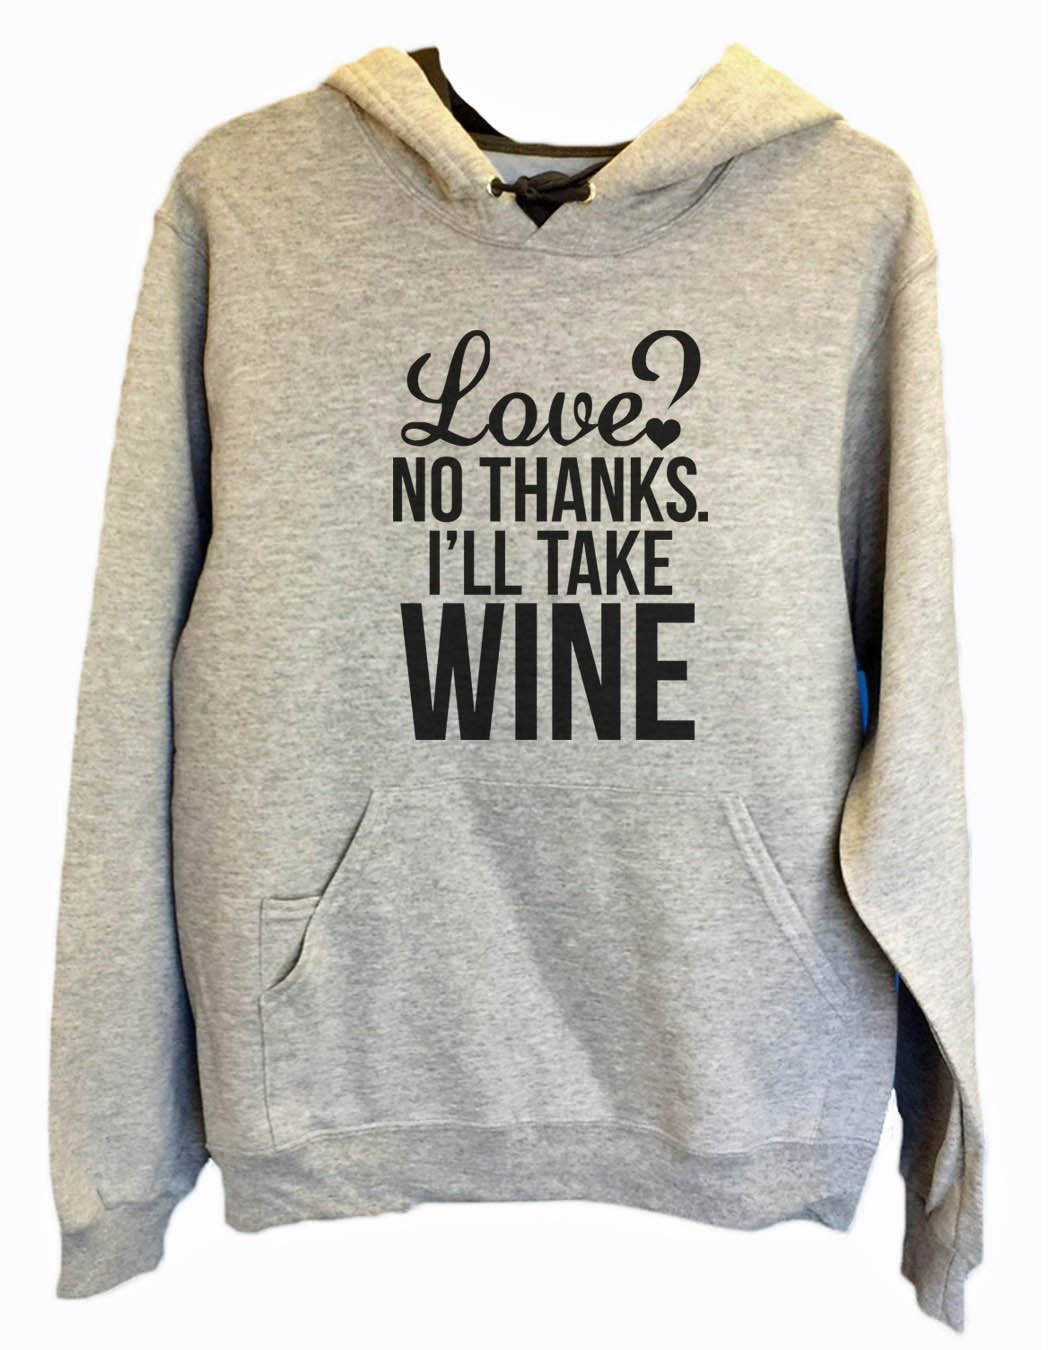 UNISEX HOODIE - Love? No Thanks. I'Ll Take Wine - FUNNY MENS AND WOMENS HOODED SWEATSHIRTS - 2137 Funny Shirt